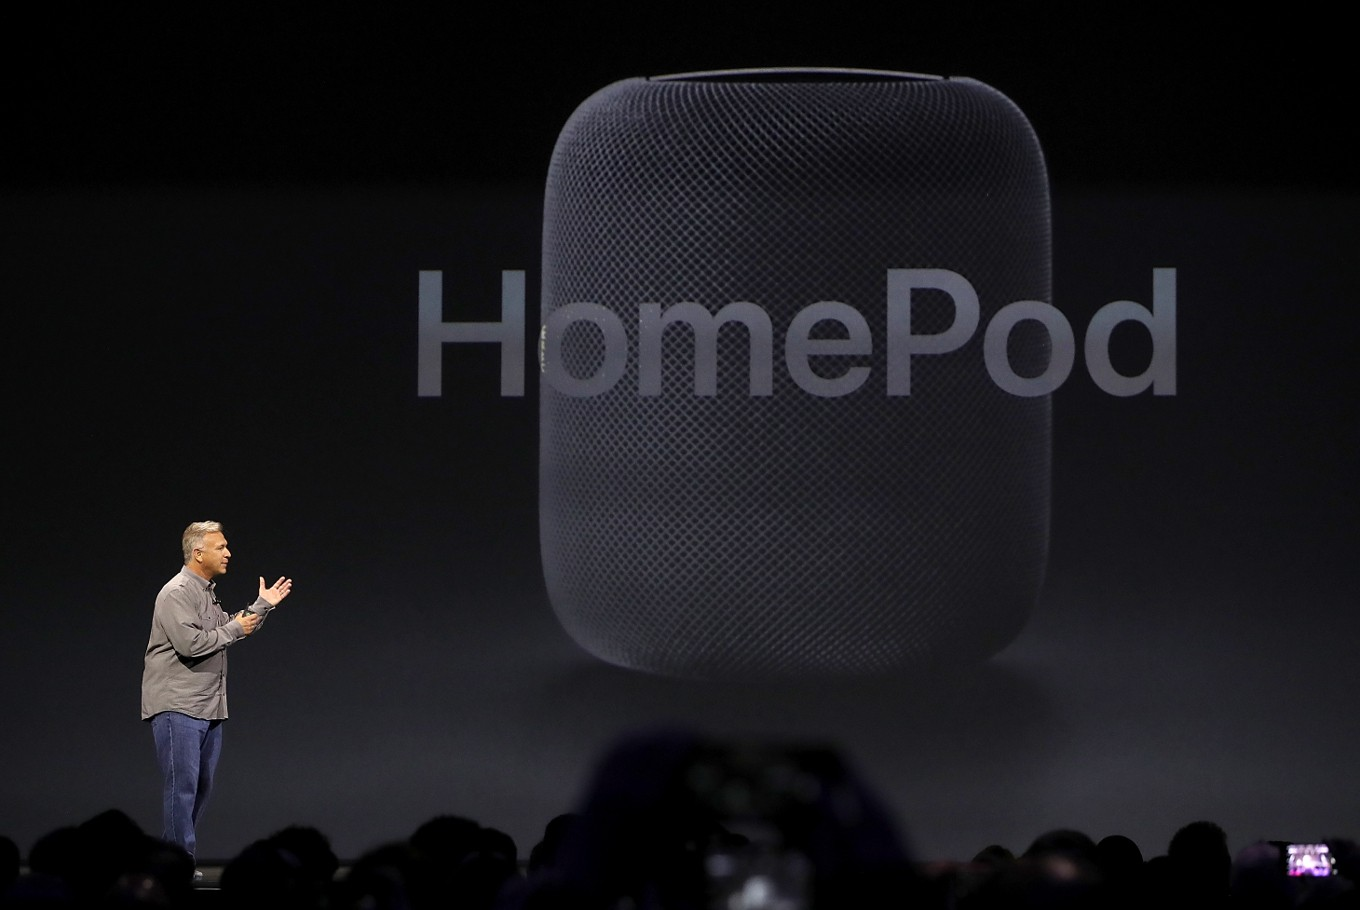 Apple HomePod isn't an Amazon Echo rival